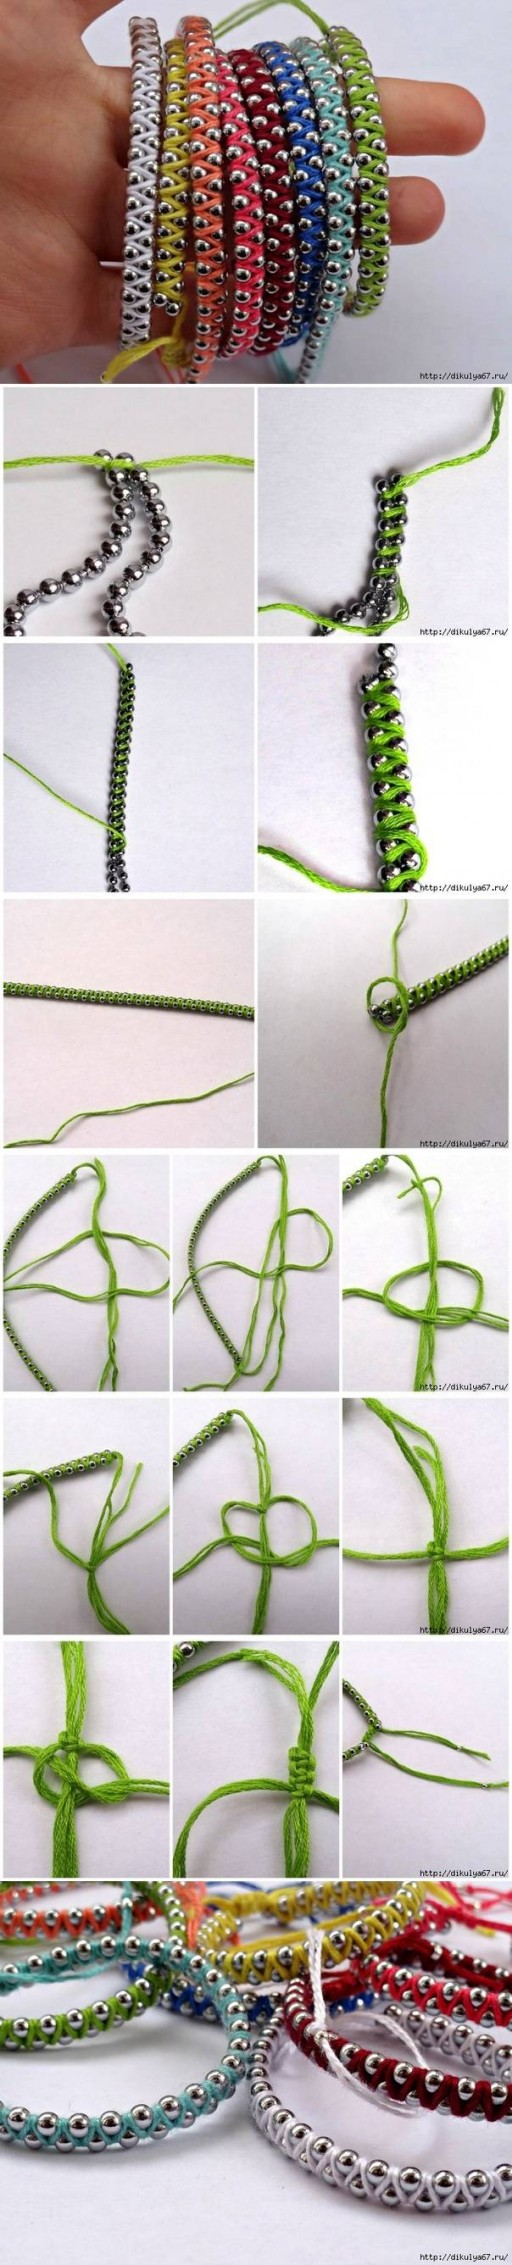 how to make macrame bracelets step by step how to make rainbow friendship bracelets step by step diy 8981